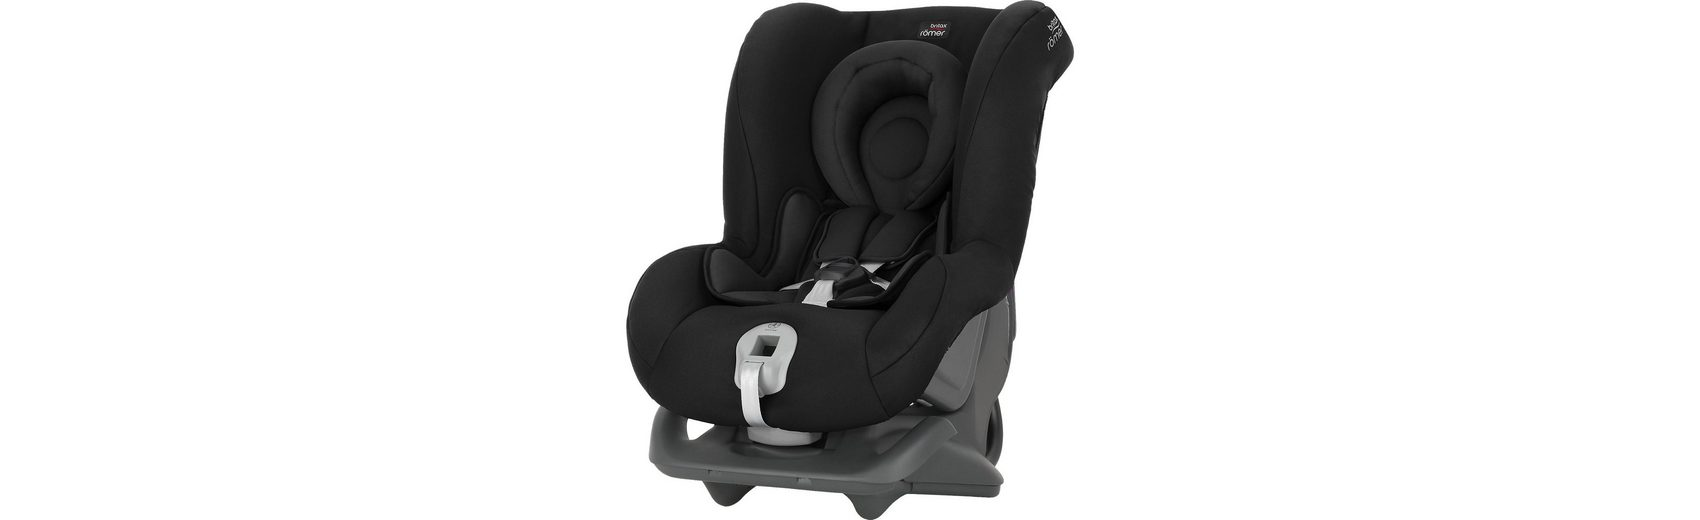 Britax Römer Auto-Kindersitz First Class Plus, Cosmos Black, 2016